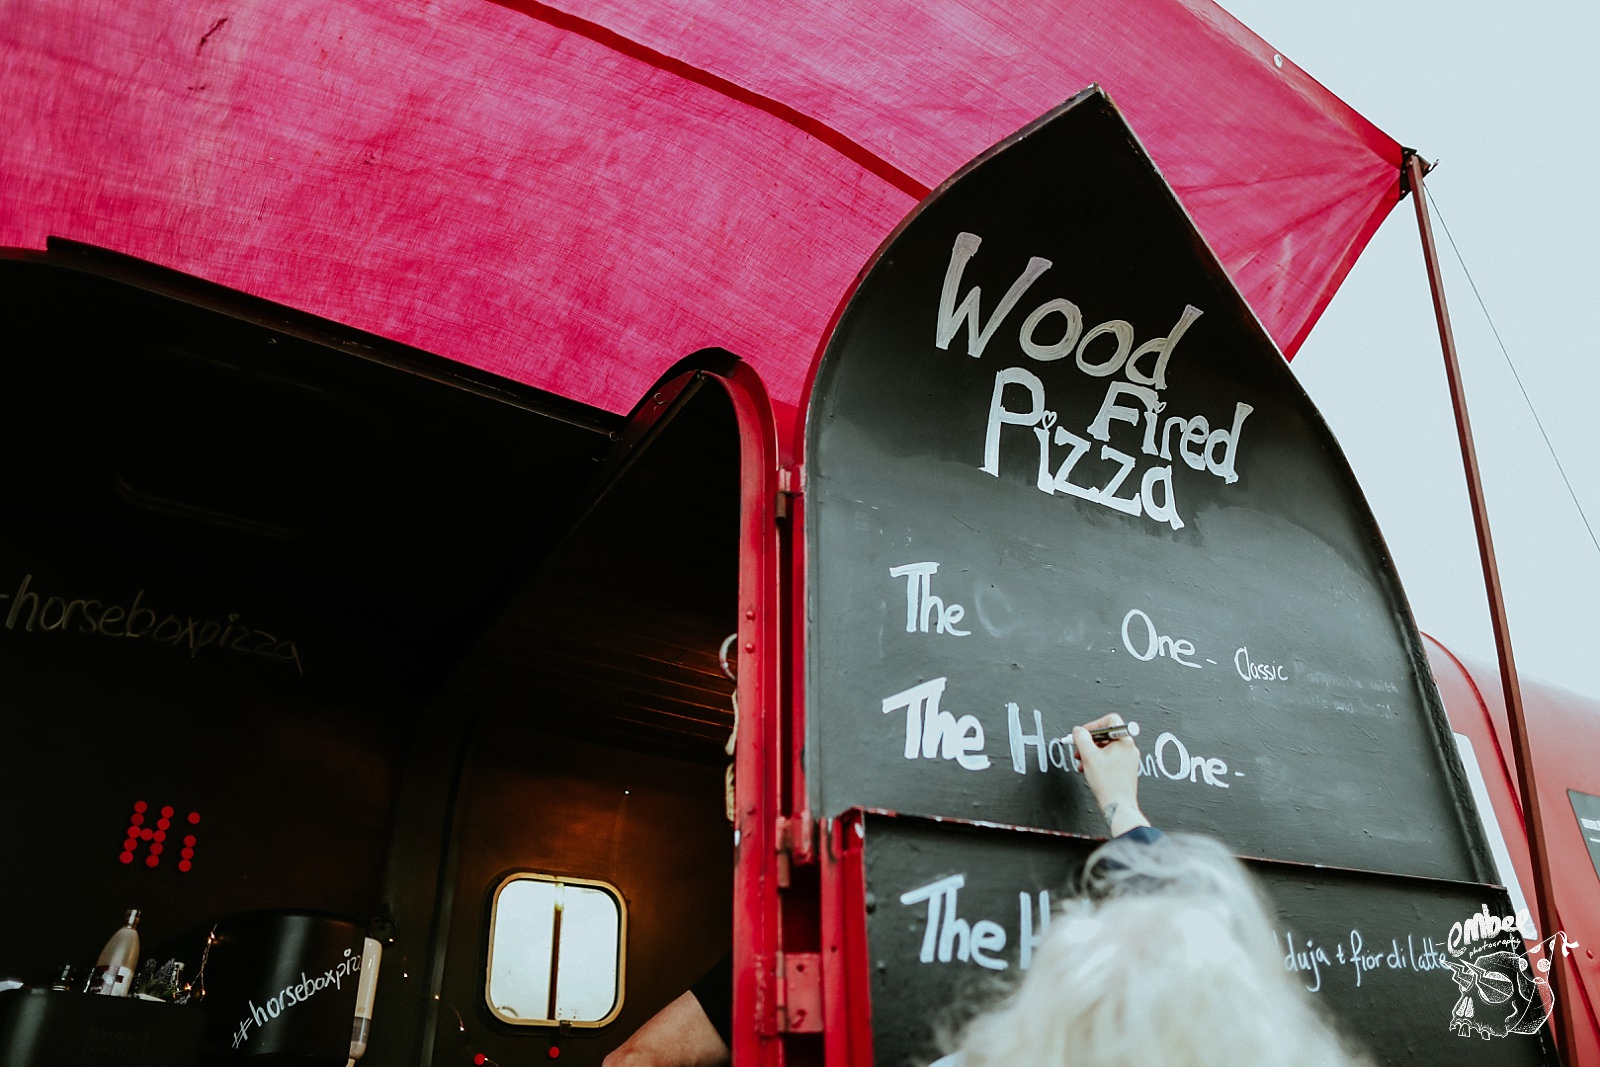 wood fired pizza horse box at wedding